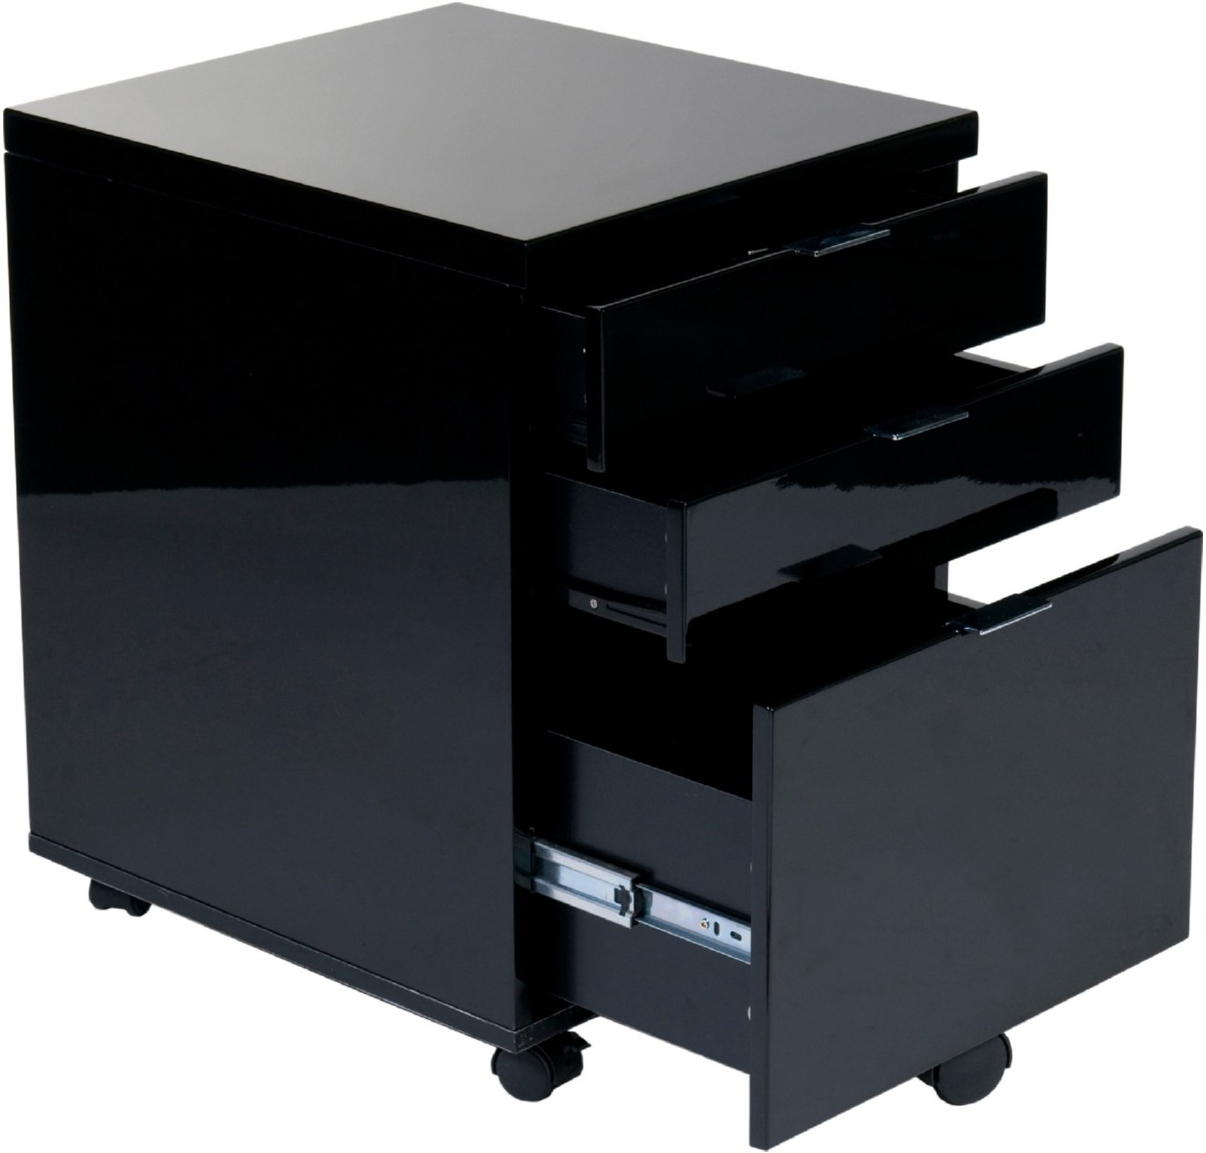 the metro filing cabinet in black